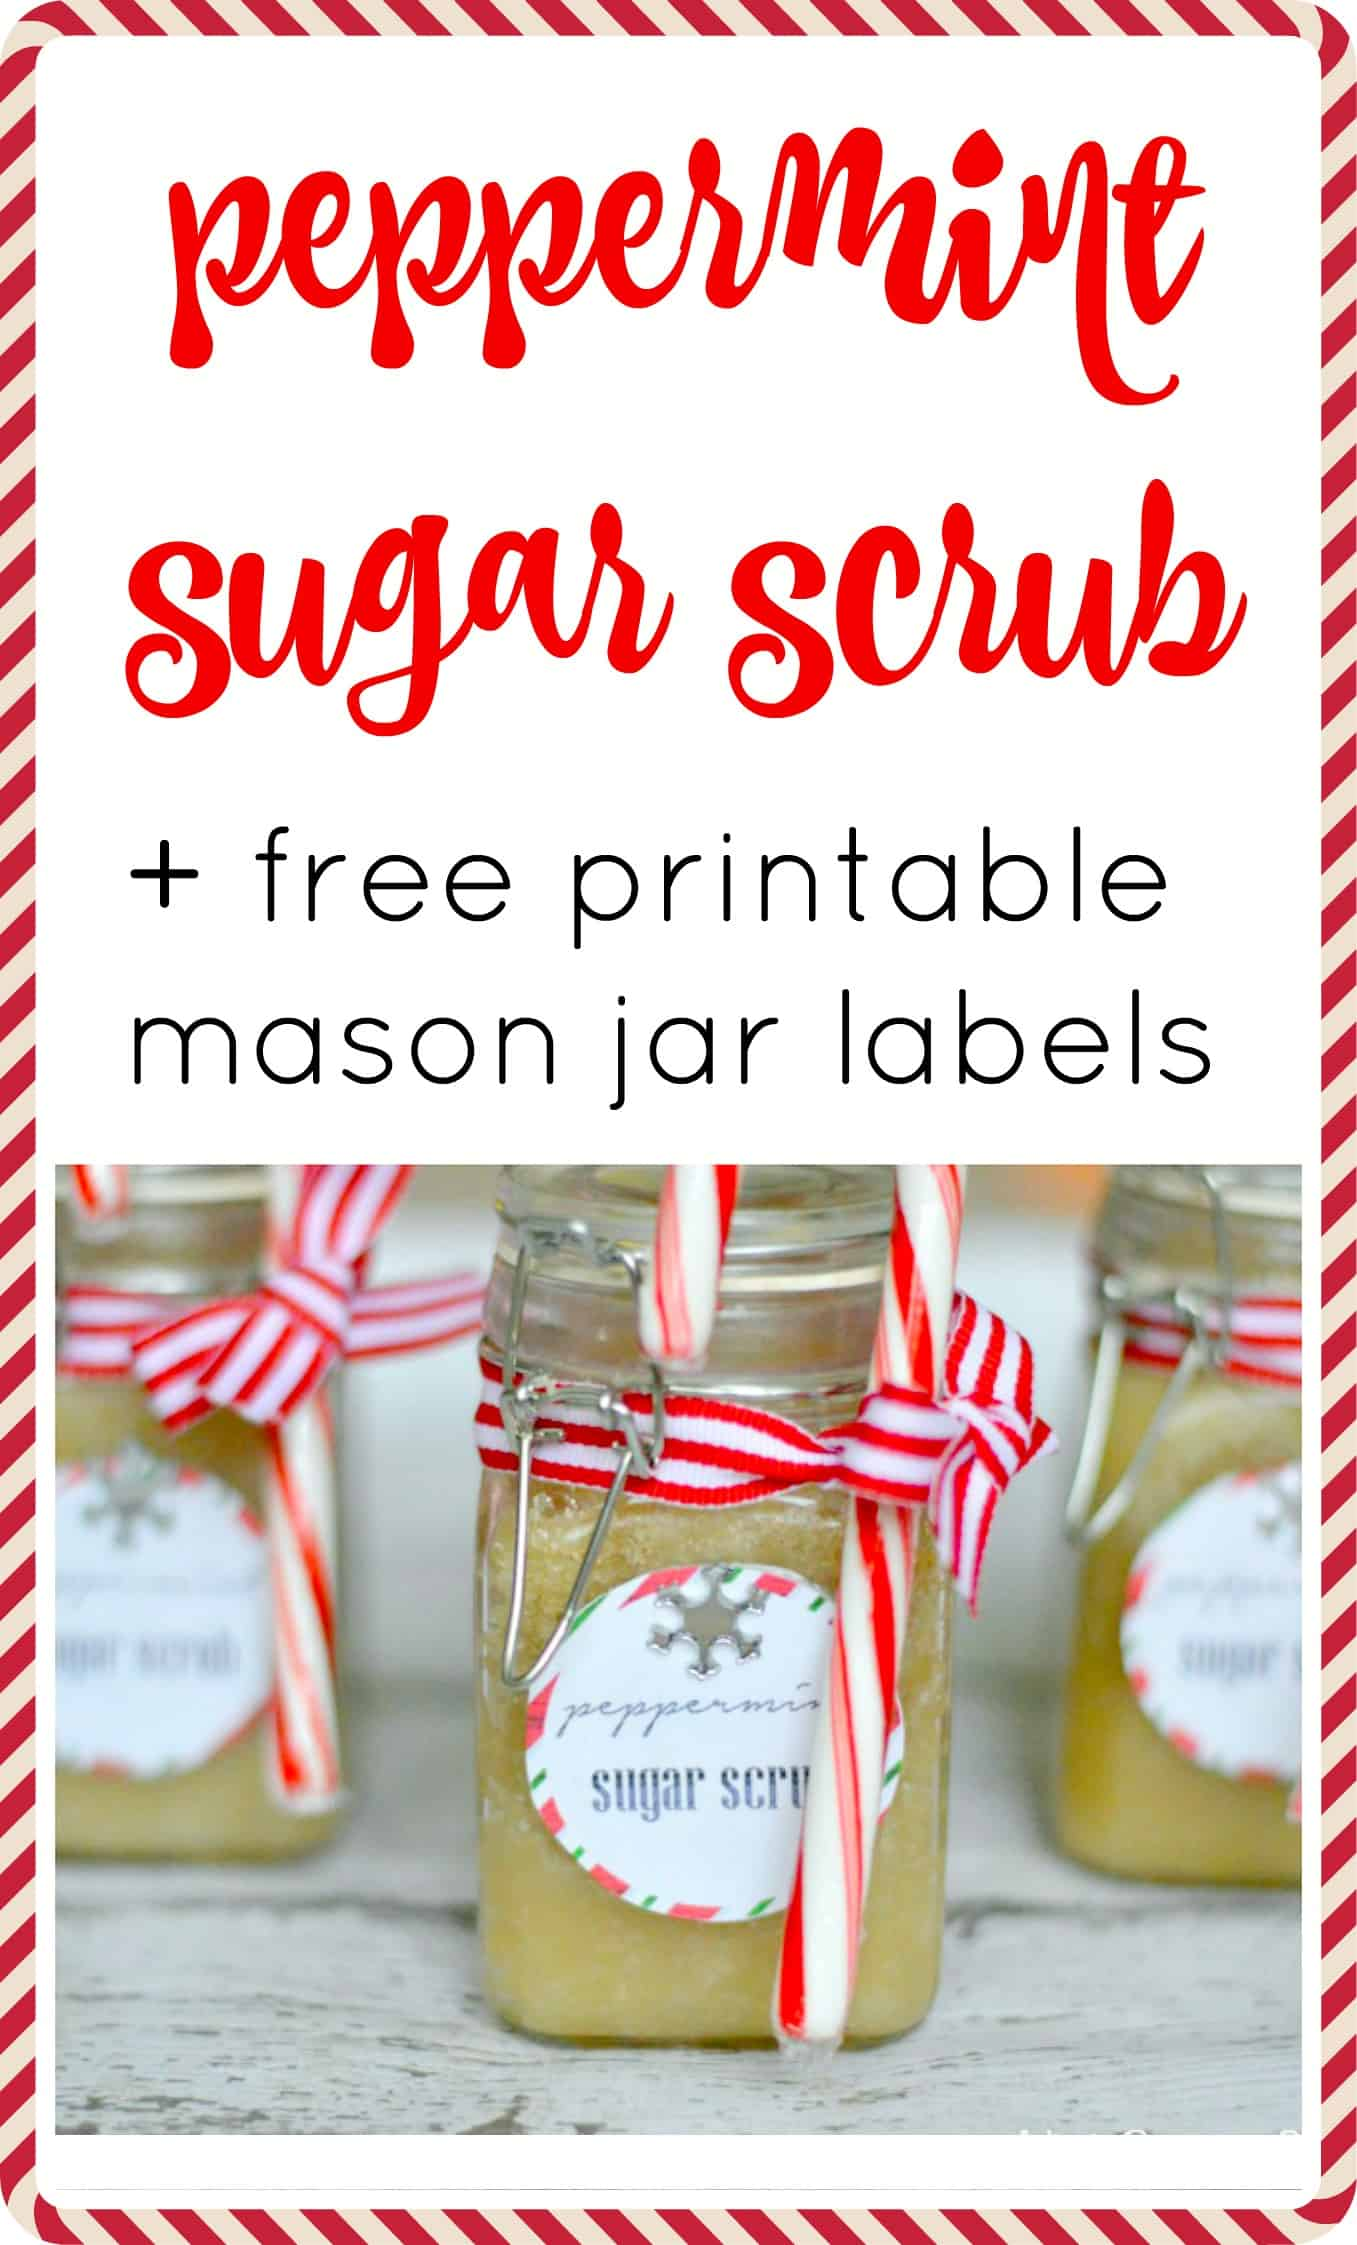 This peppermint sugar scrub + free printable labels is a fun and easy gift for christmas and the holiday season. You'll love it so much that you will make some for yourself!!